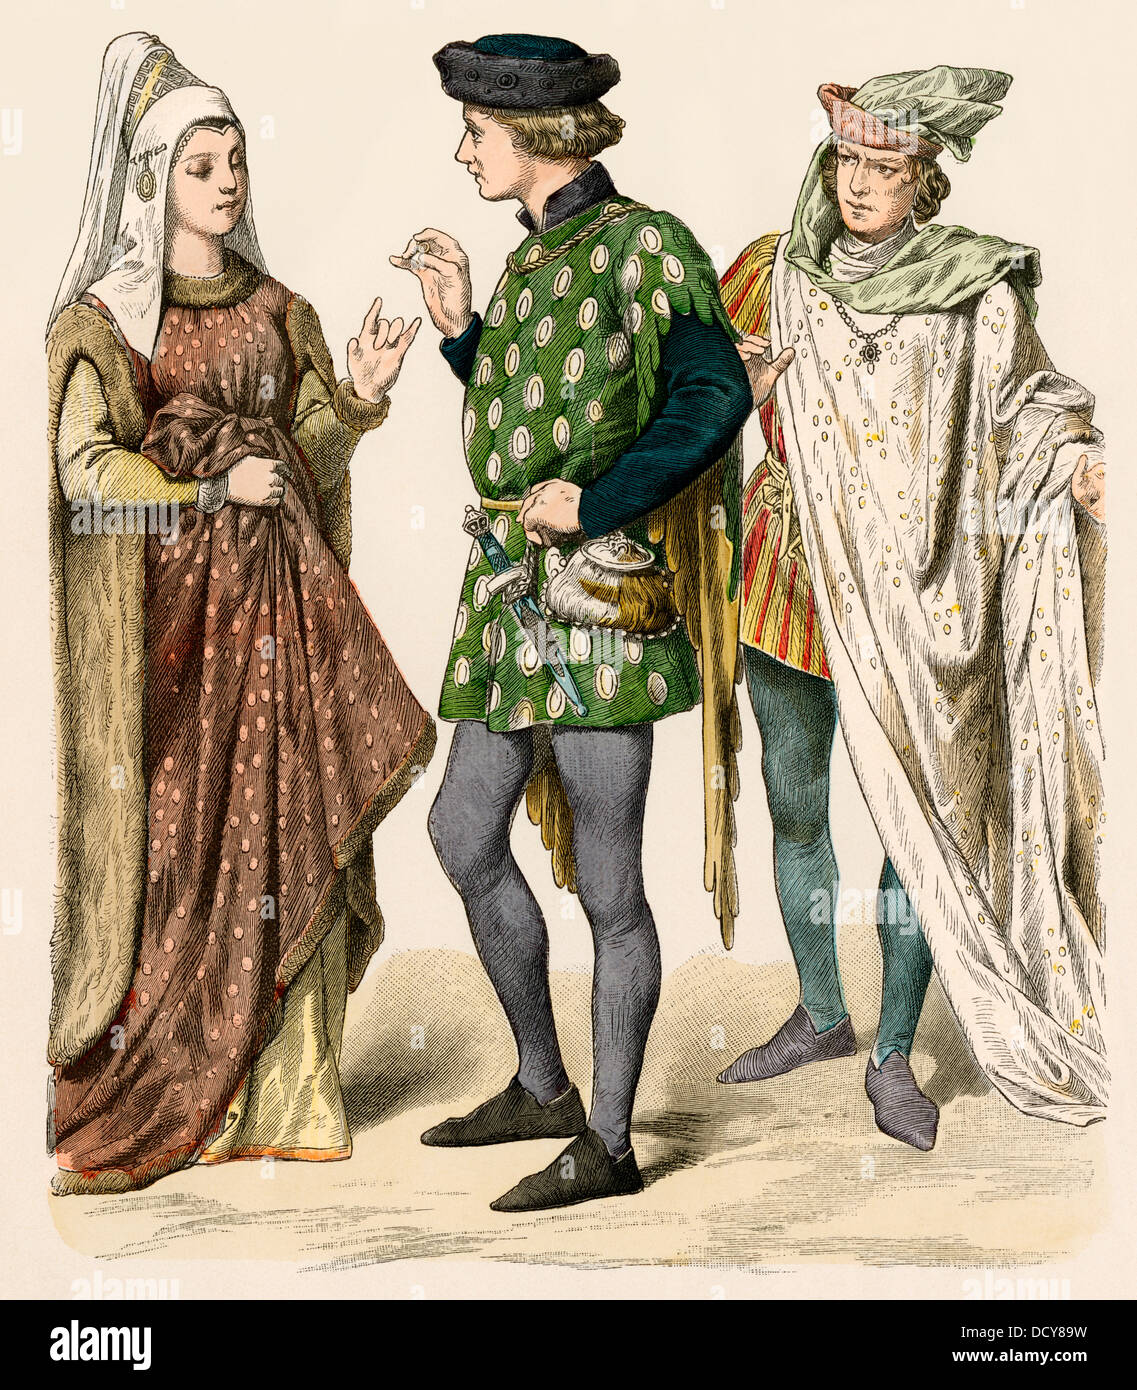 English citizens of the early 1400s. Hand-colored print - Stock Image